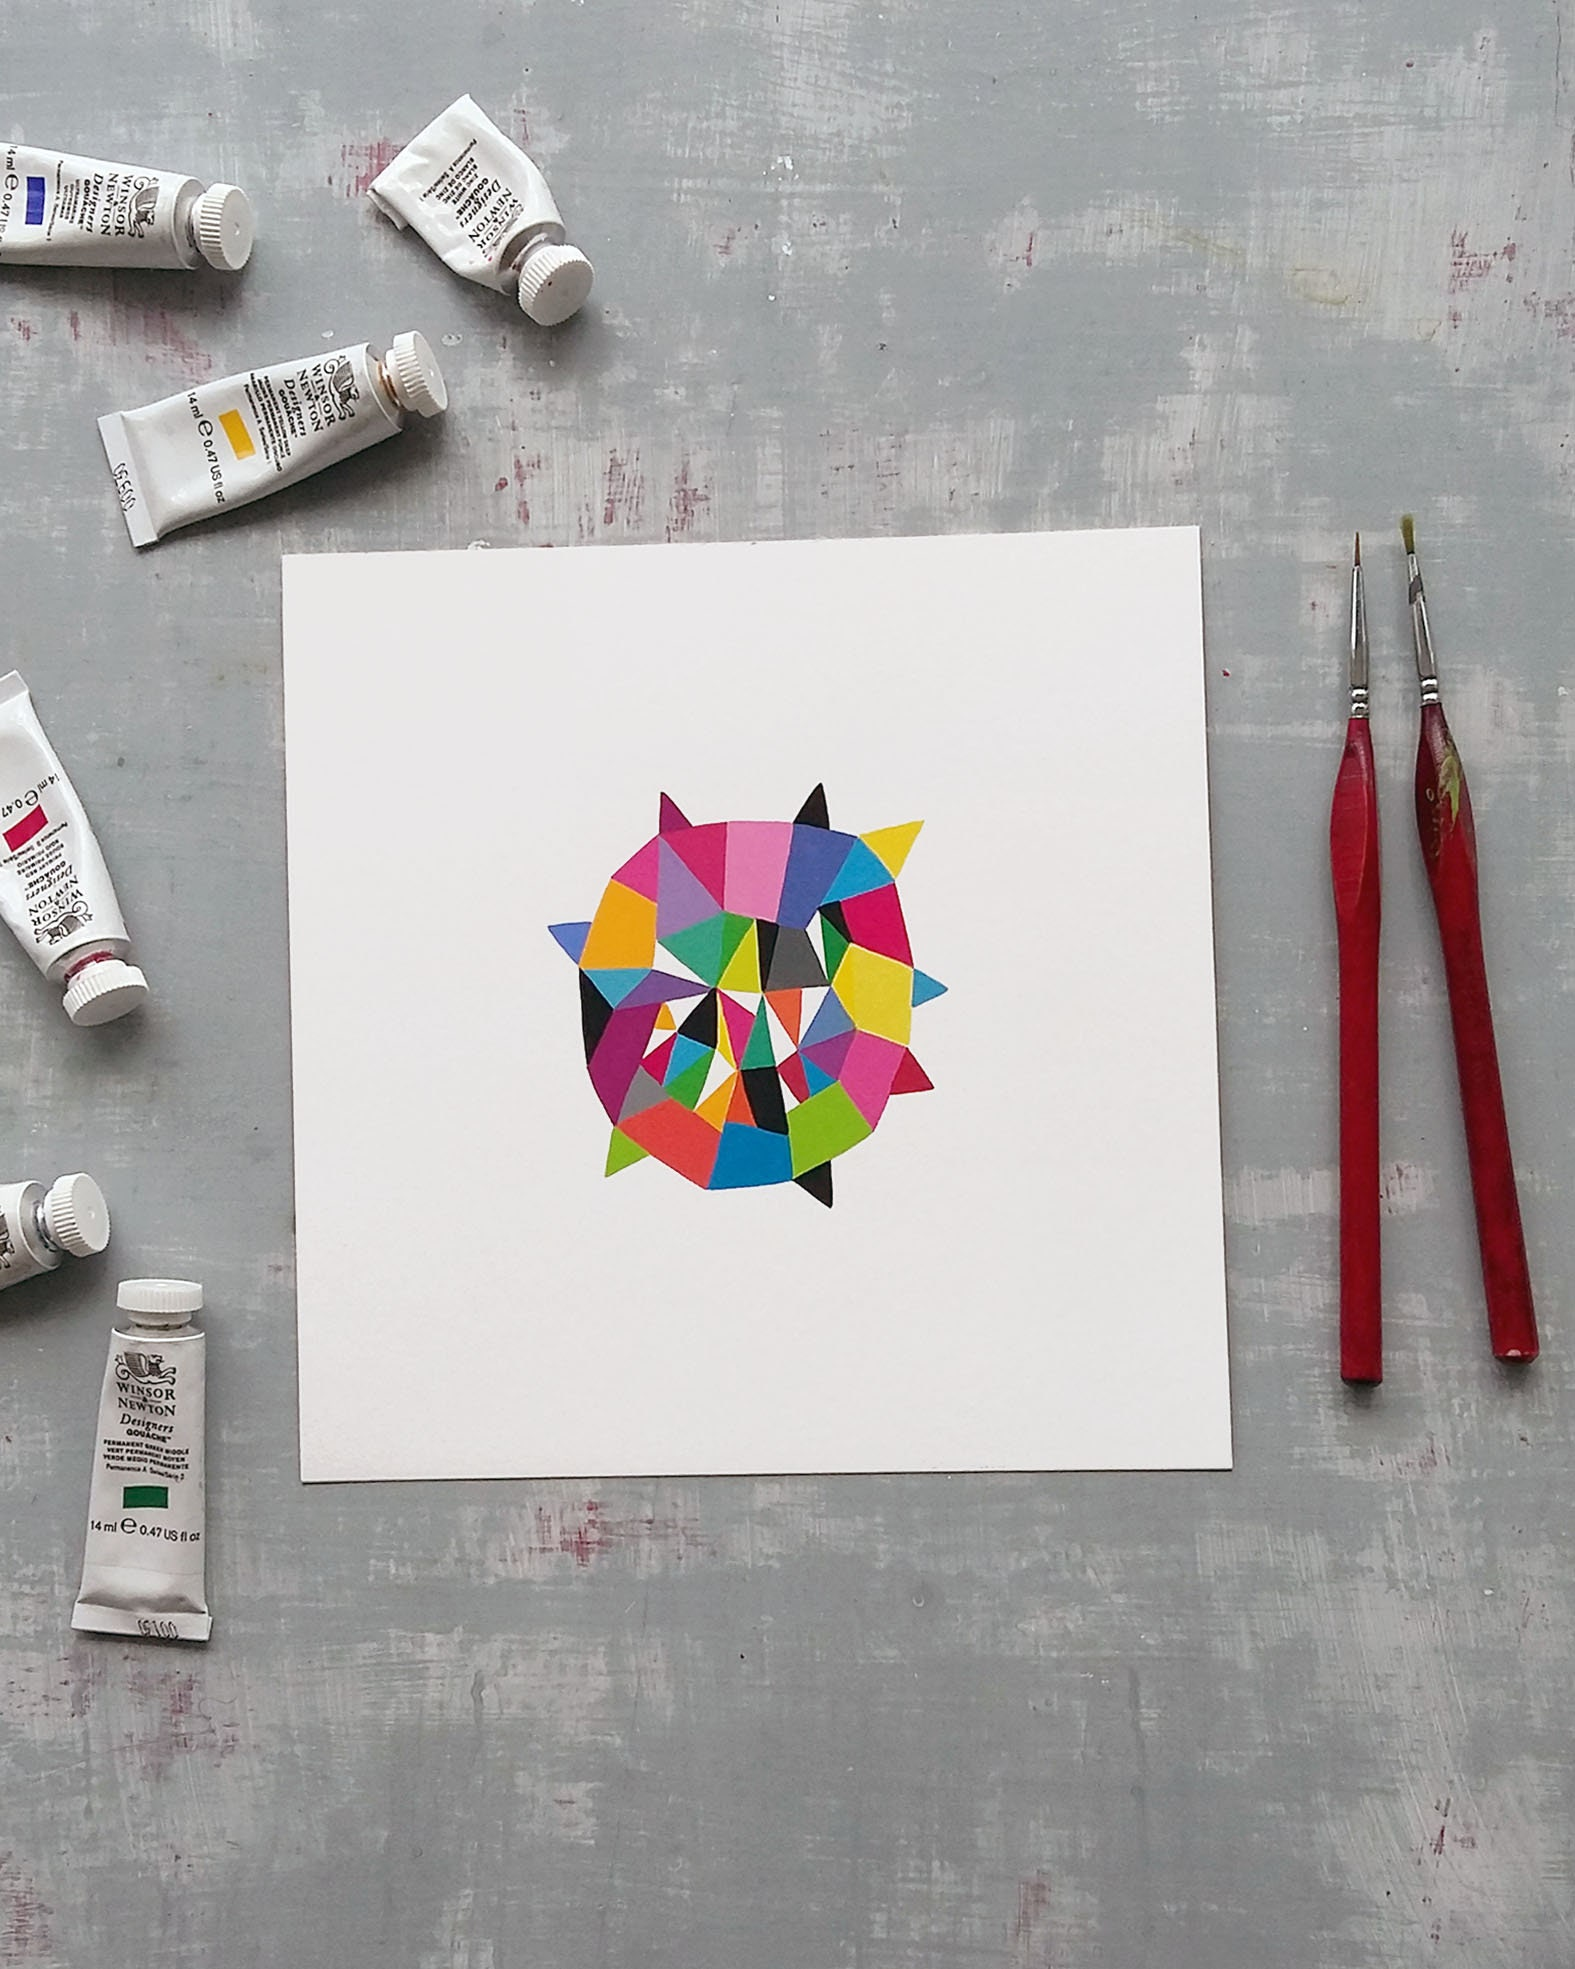 Star_006, small original geometric illustration - product image